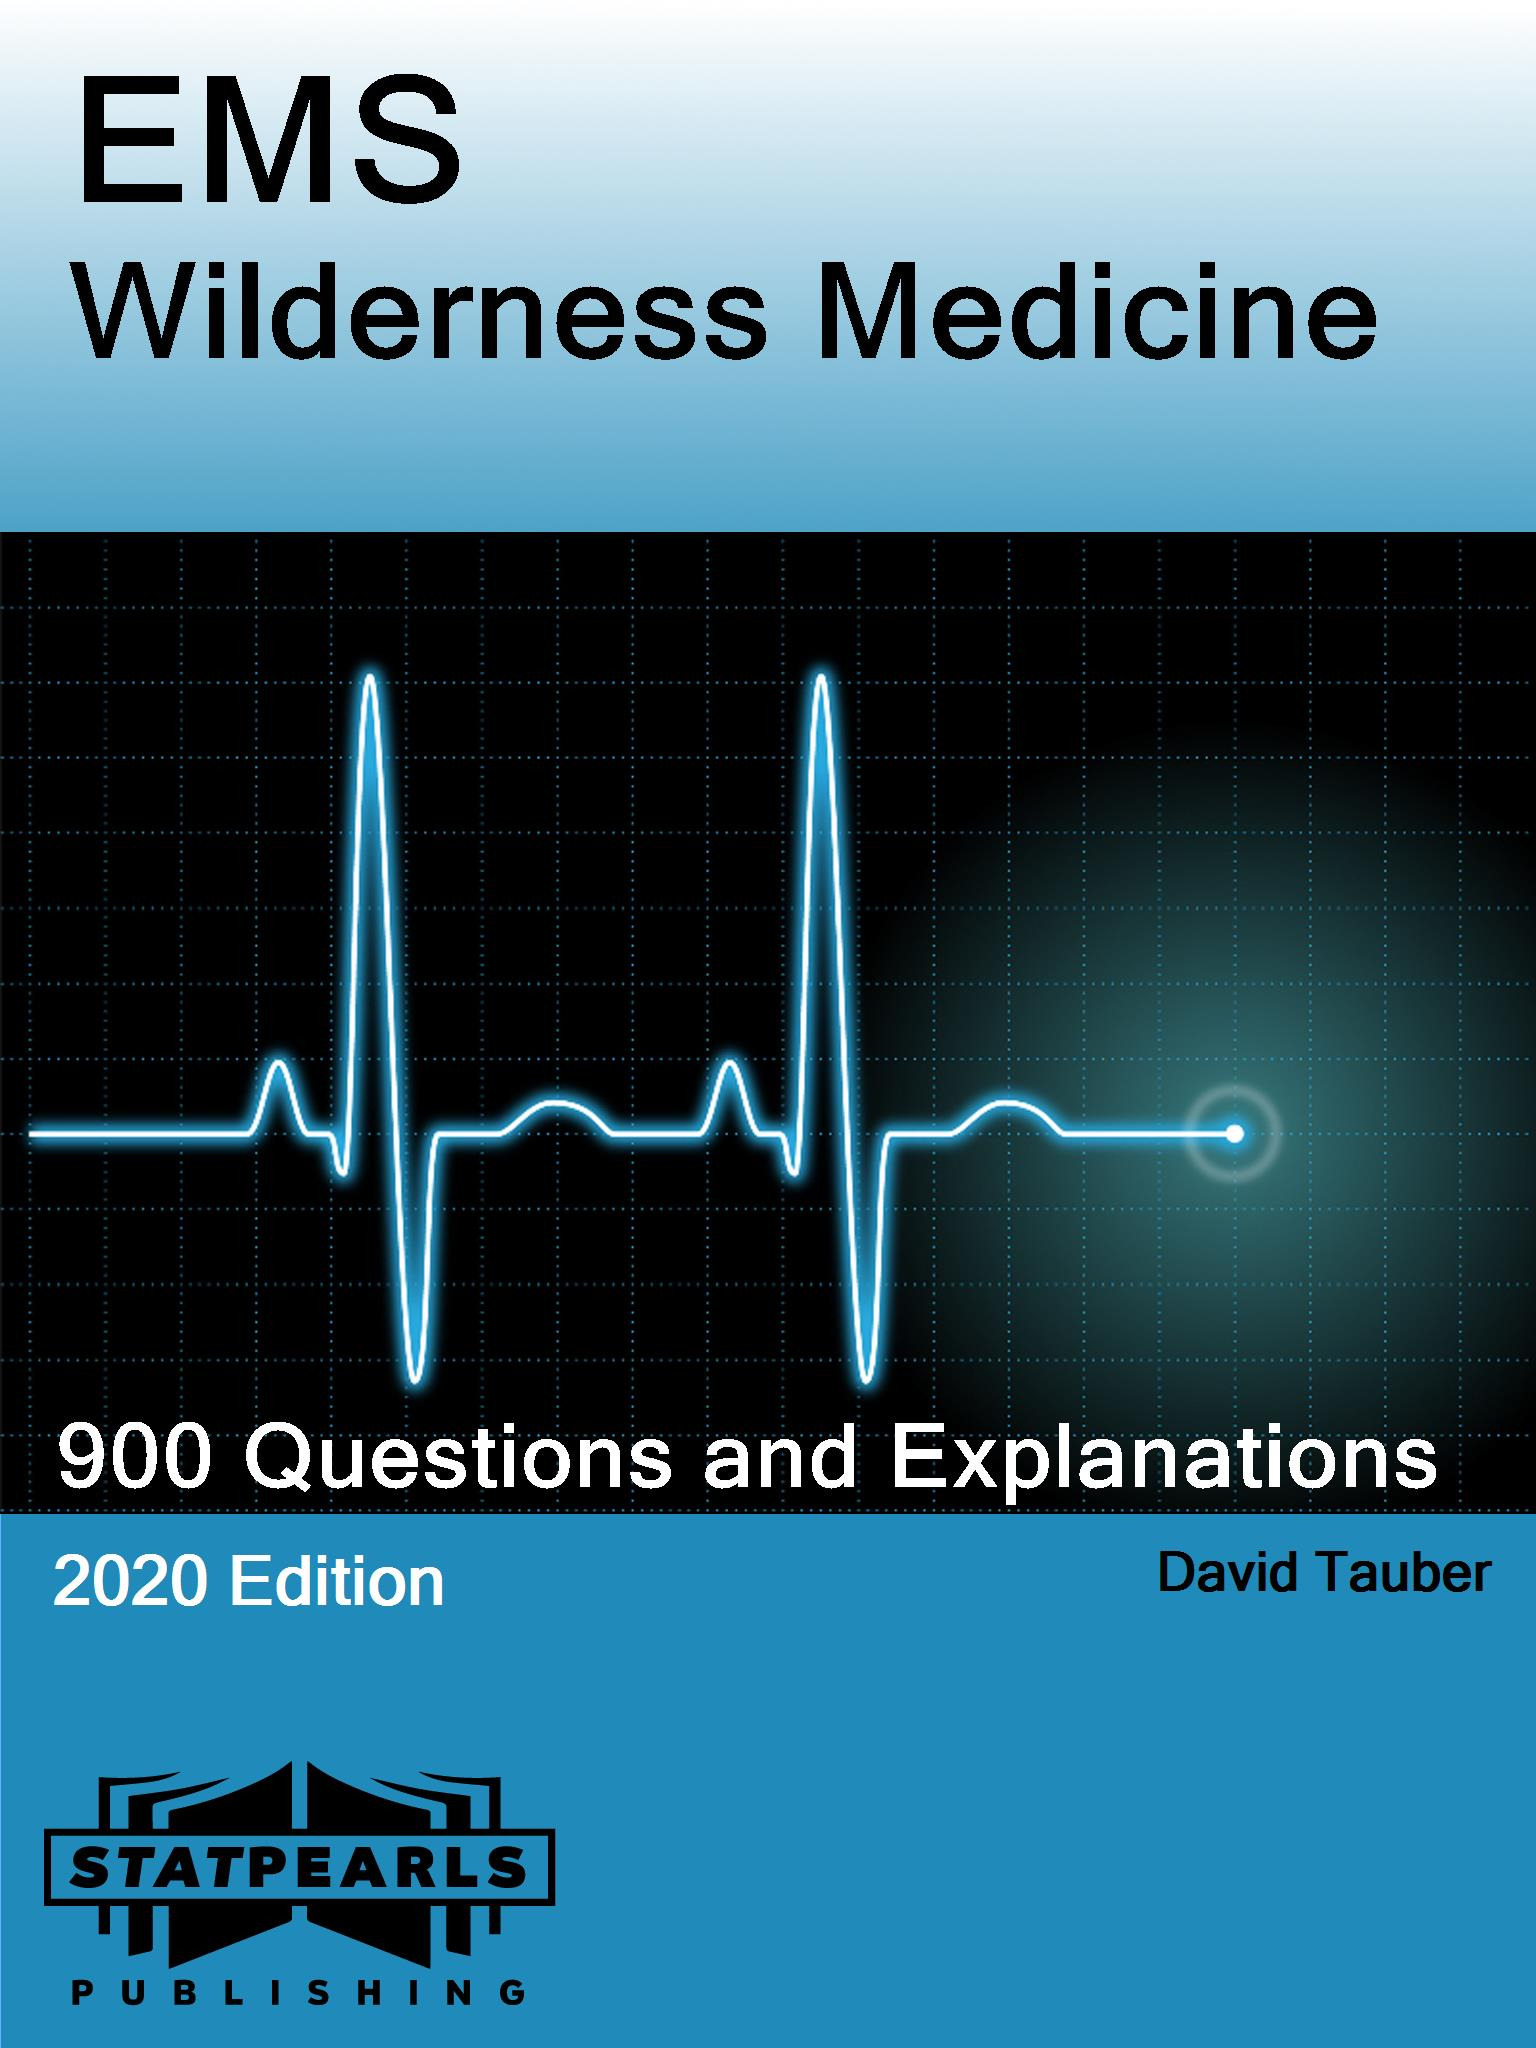 EMS Wilderness Medicine